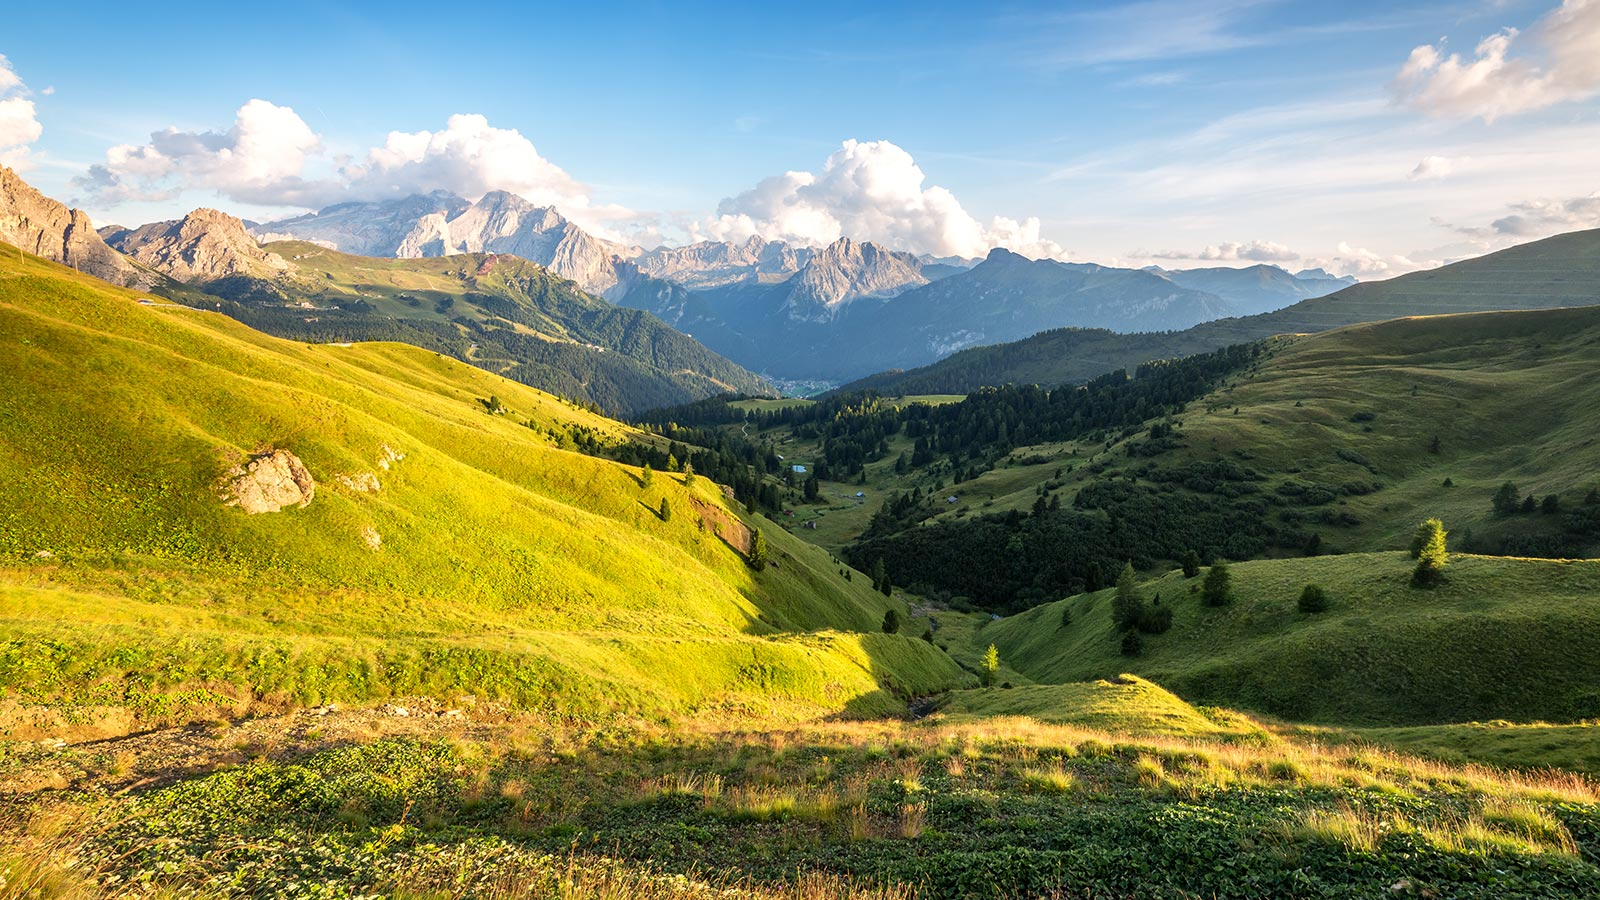 Panorama of Val di Fassa at sunset with the Dolomites in the background